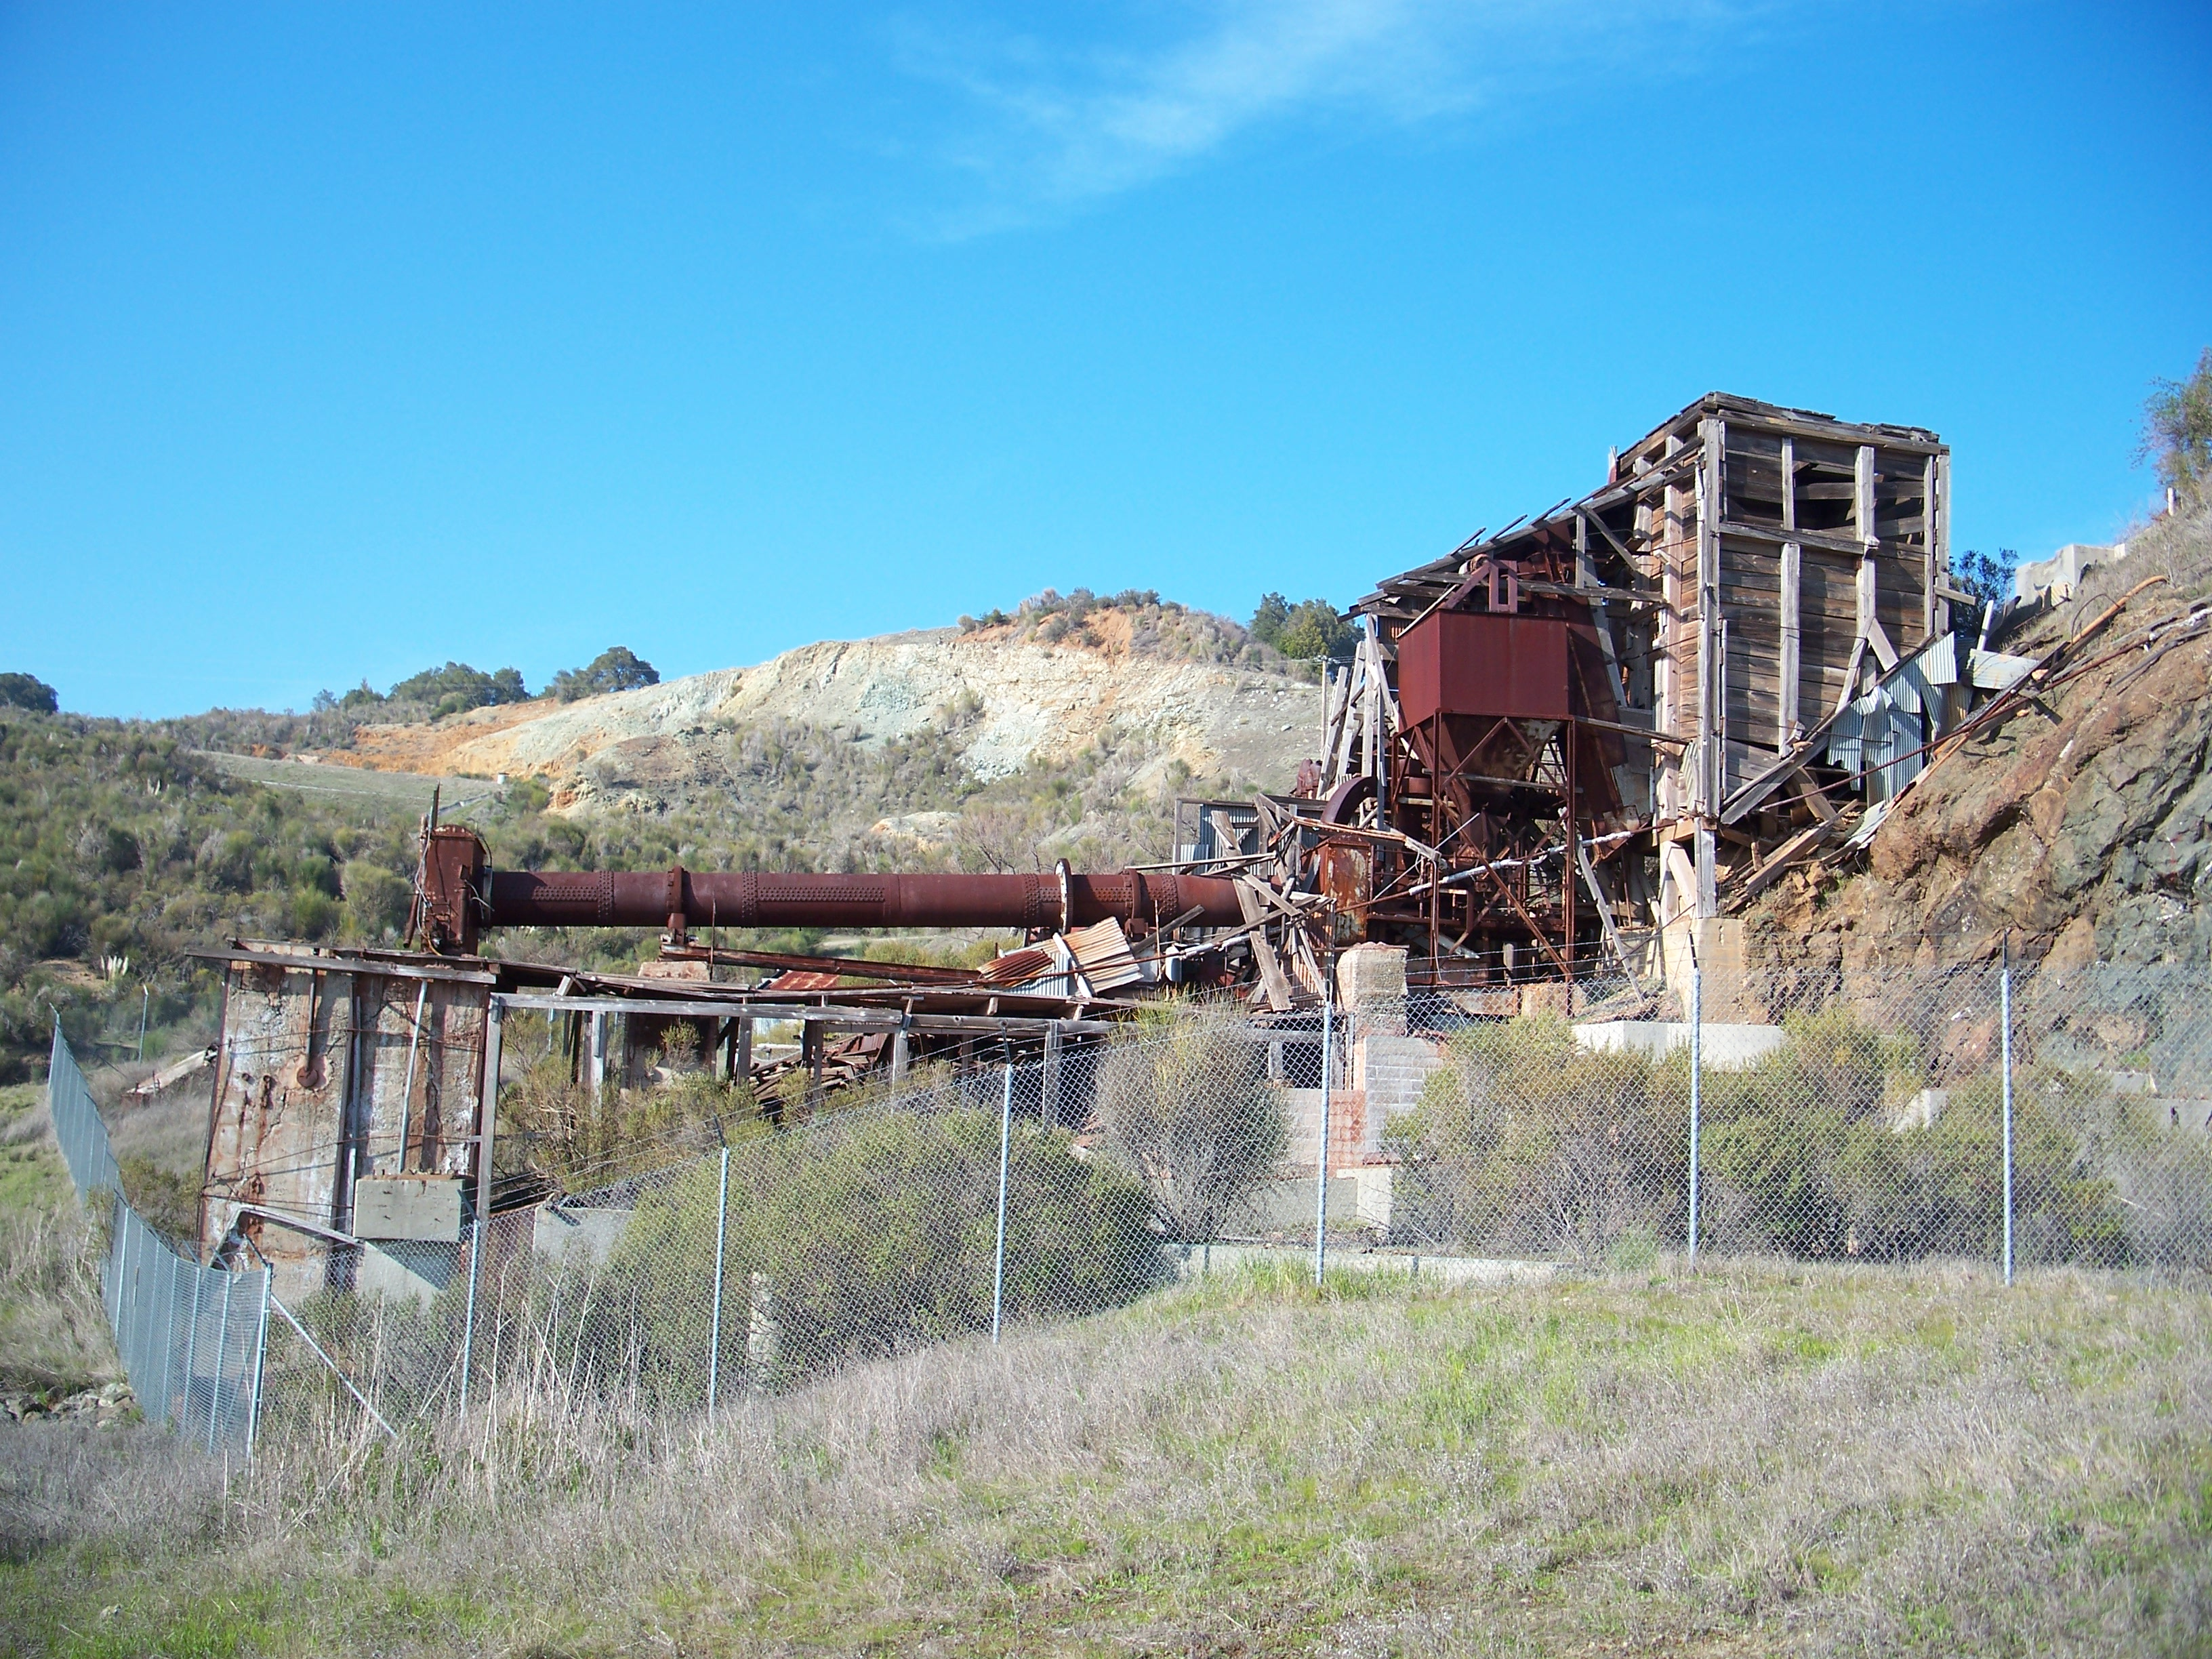 File:USA-San Jose-Almaden Quicksilver Park-Rotary Furnace-1 ...